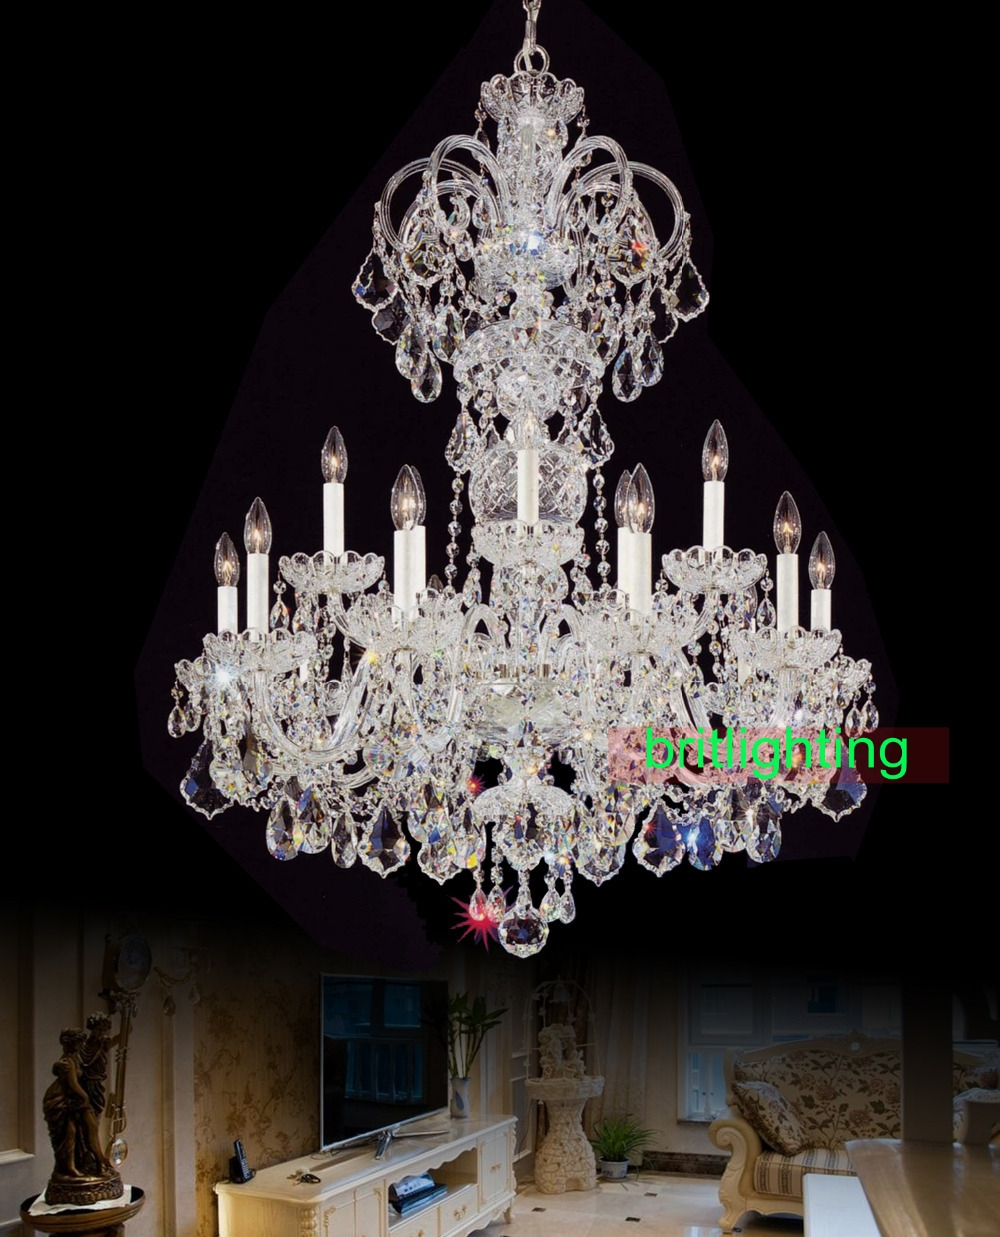 Online Buy Wholesale Big Chandelier From China Big Chandelier With Regard To Huge Crystal Chandeliers (View 6 of 15)